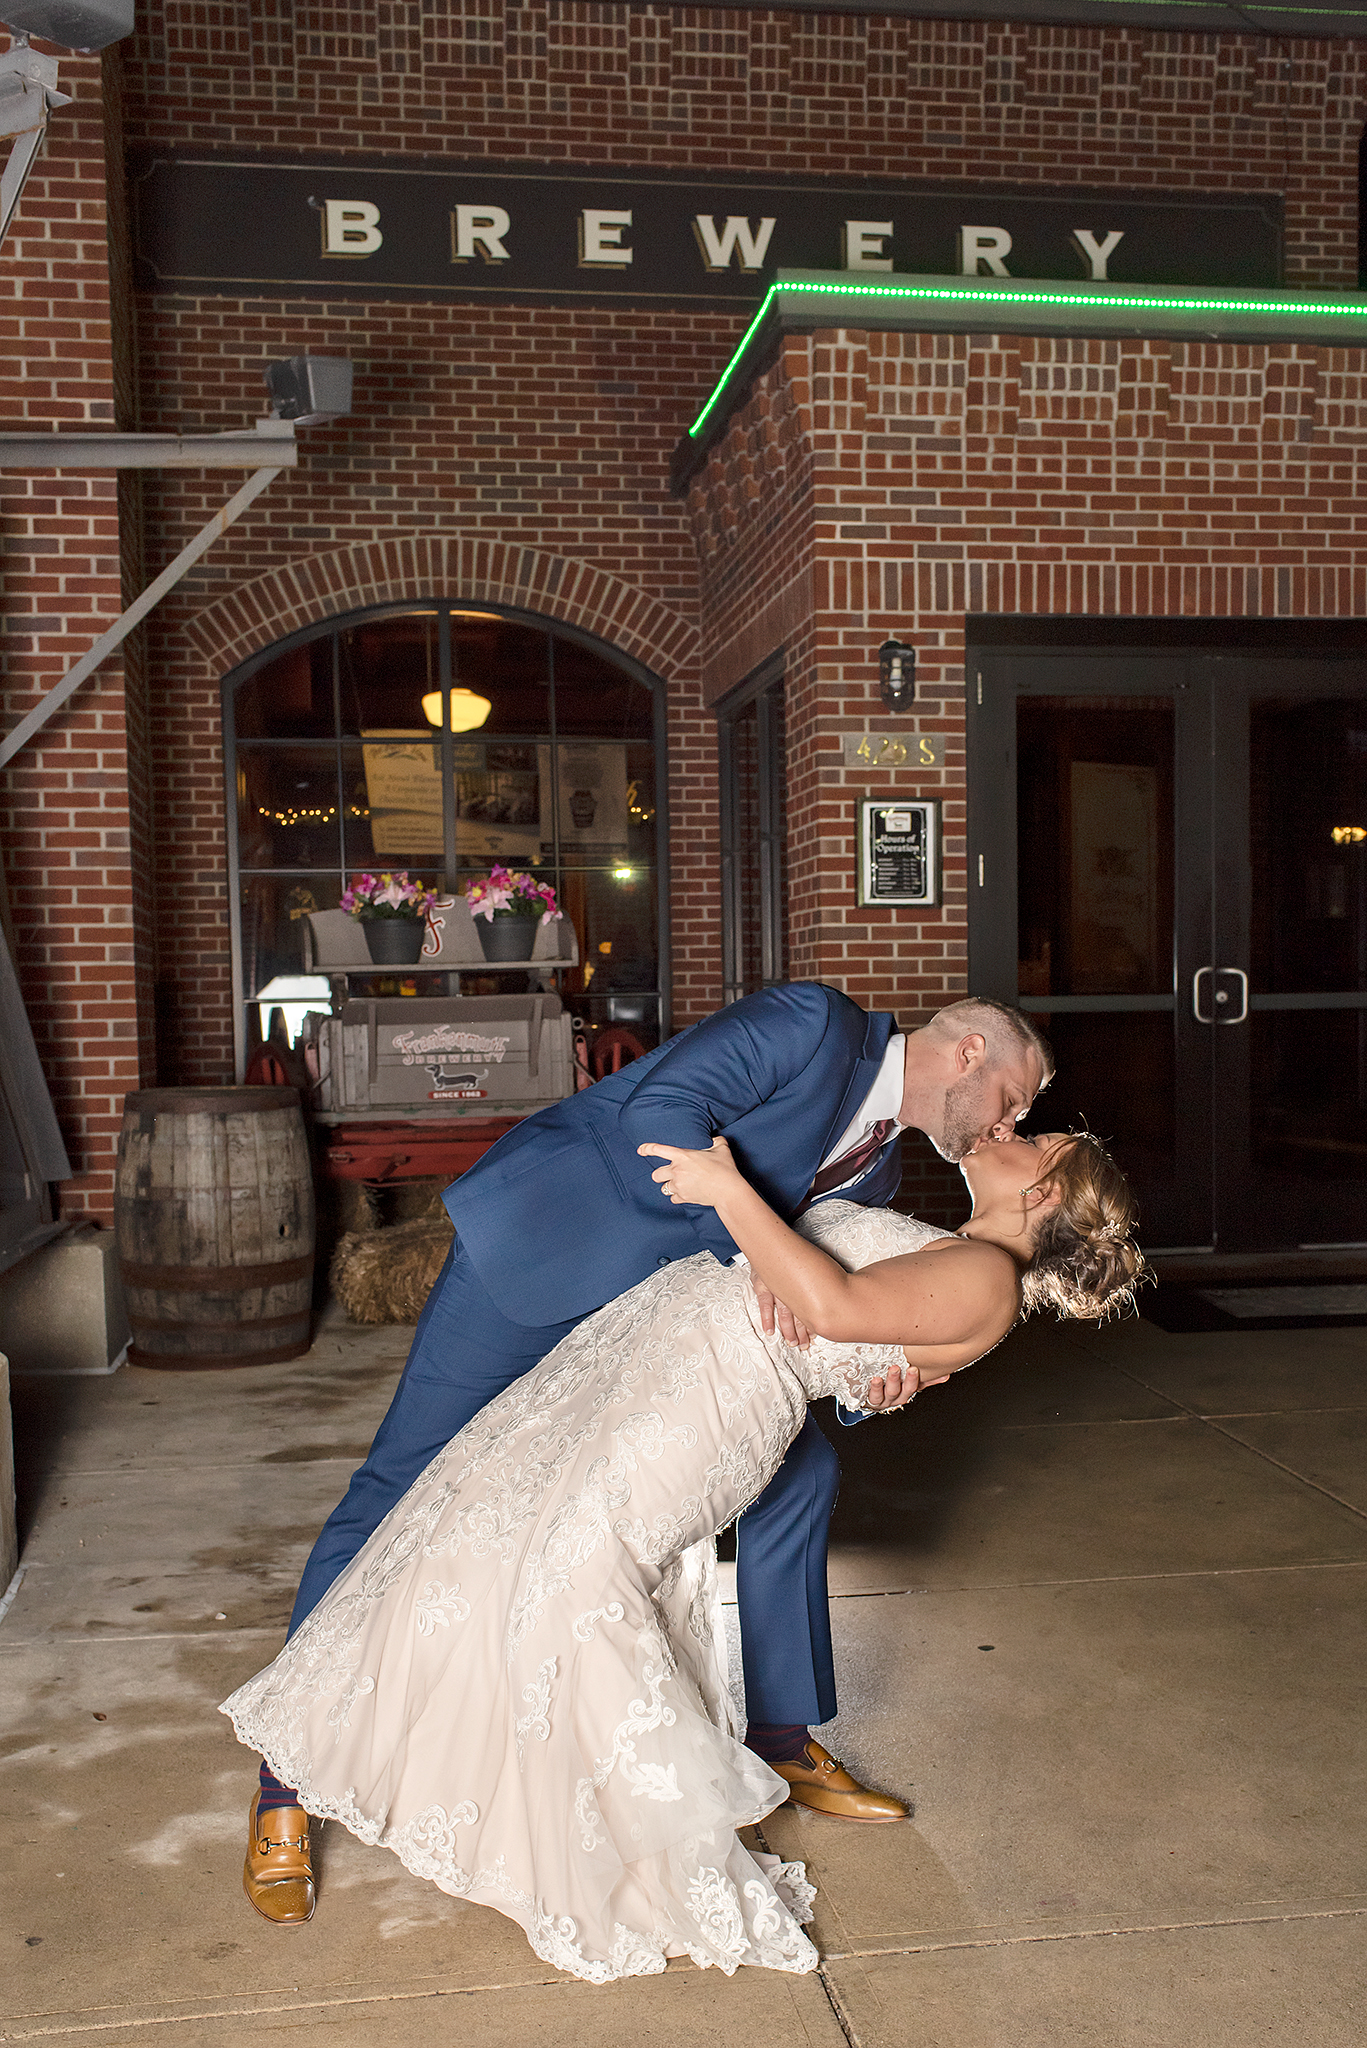 LINDSAY-ADKINS-PHOTOGRAPHY-MICHIGAN-WEDDING-PHOTOGRAPHER-FRANKENMUTH-BREWERY-WEDDING-MICHIGAN-BLOG-34